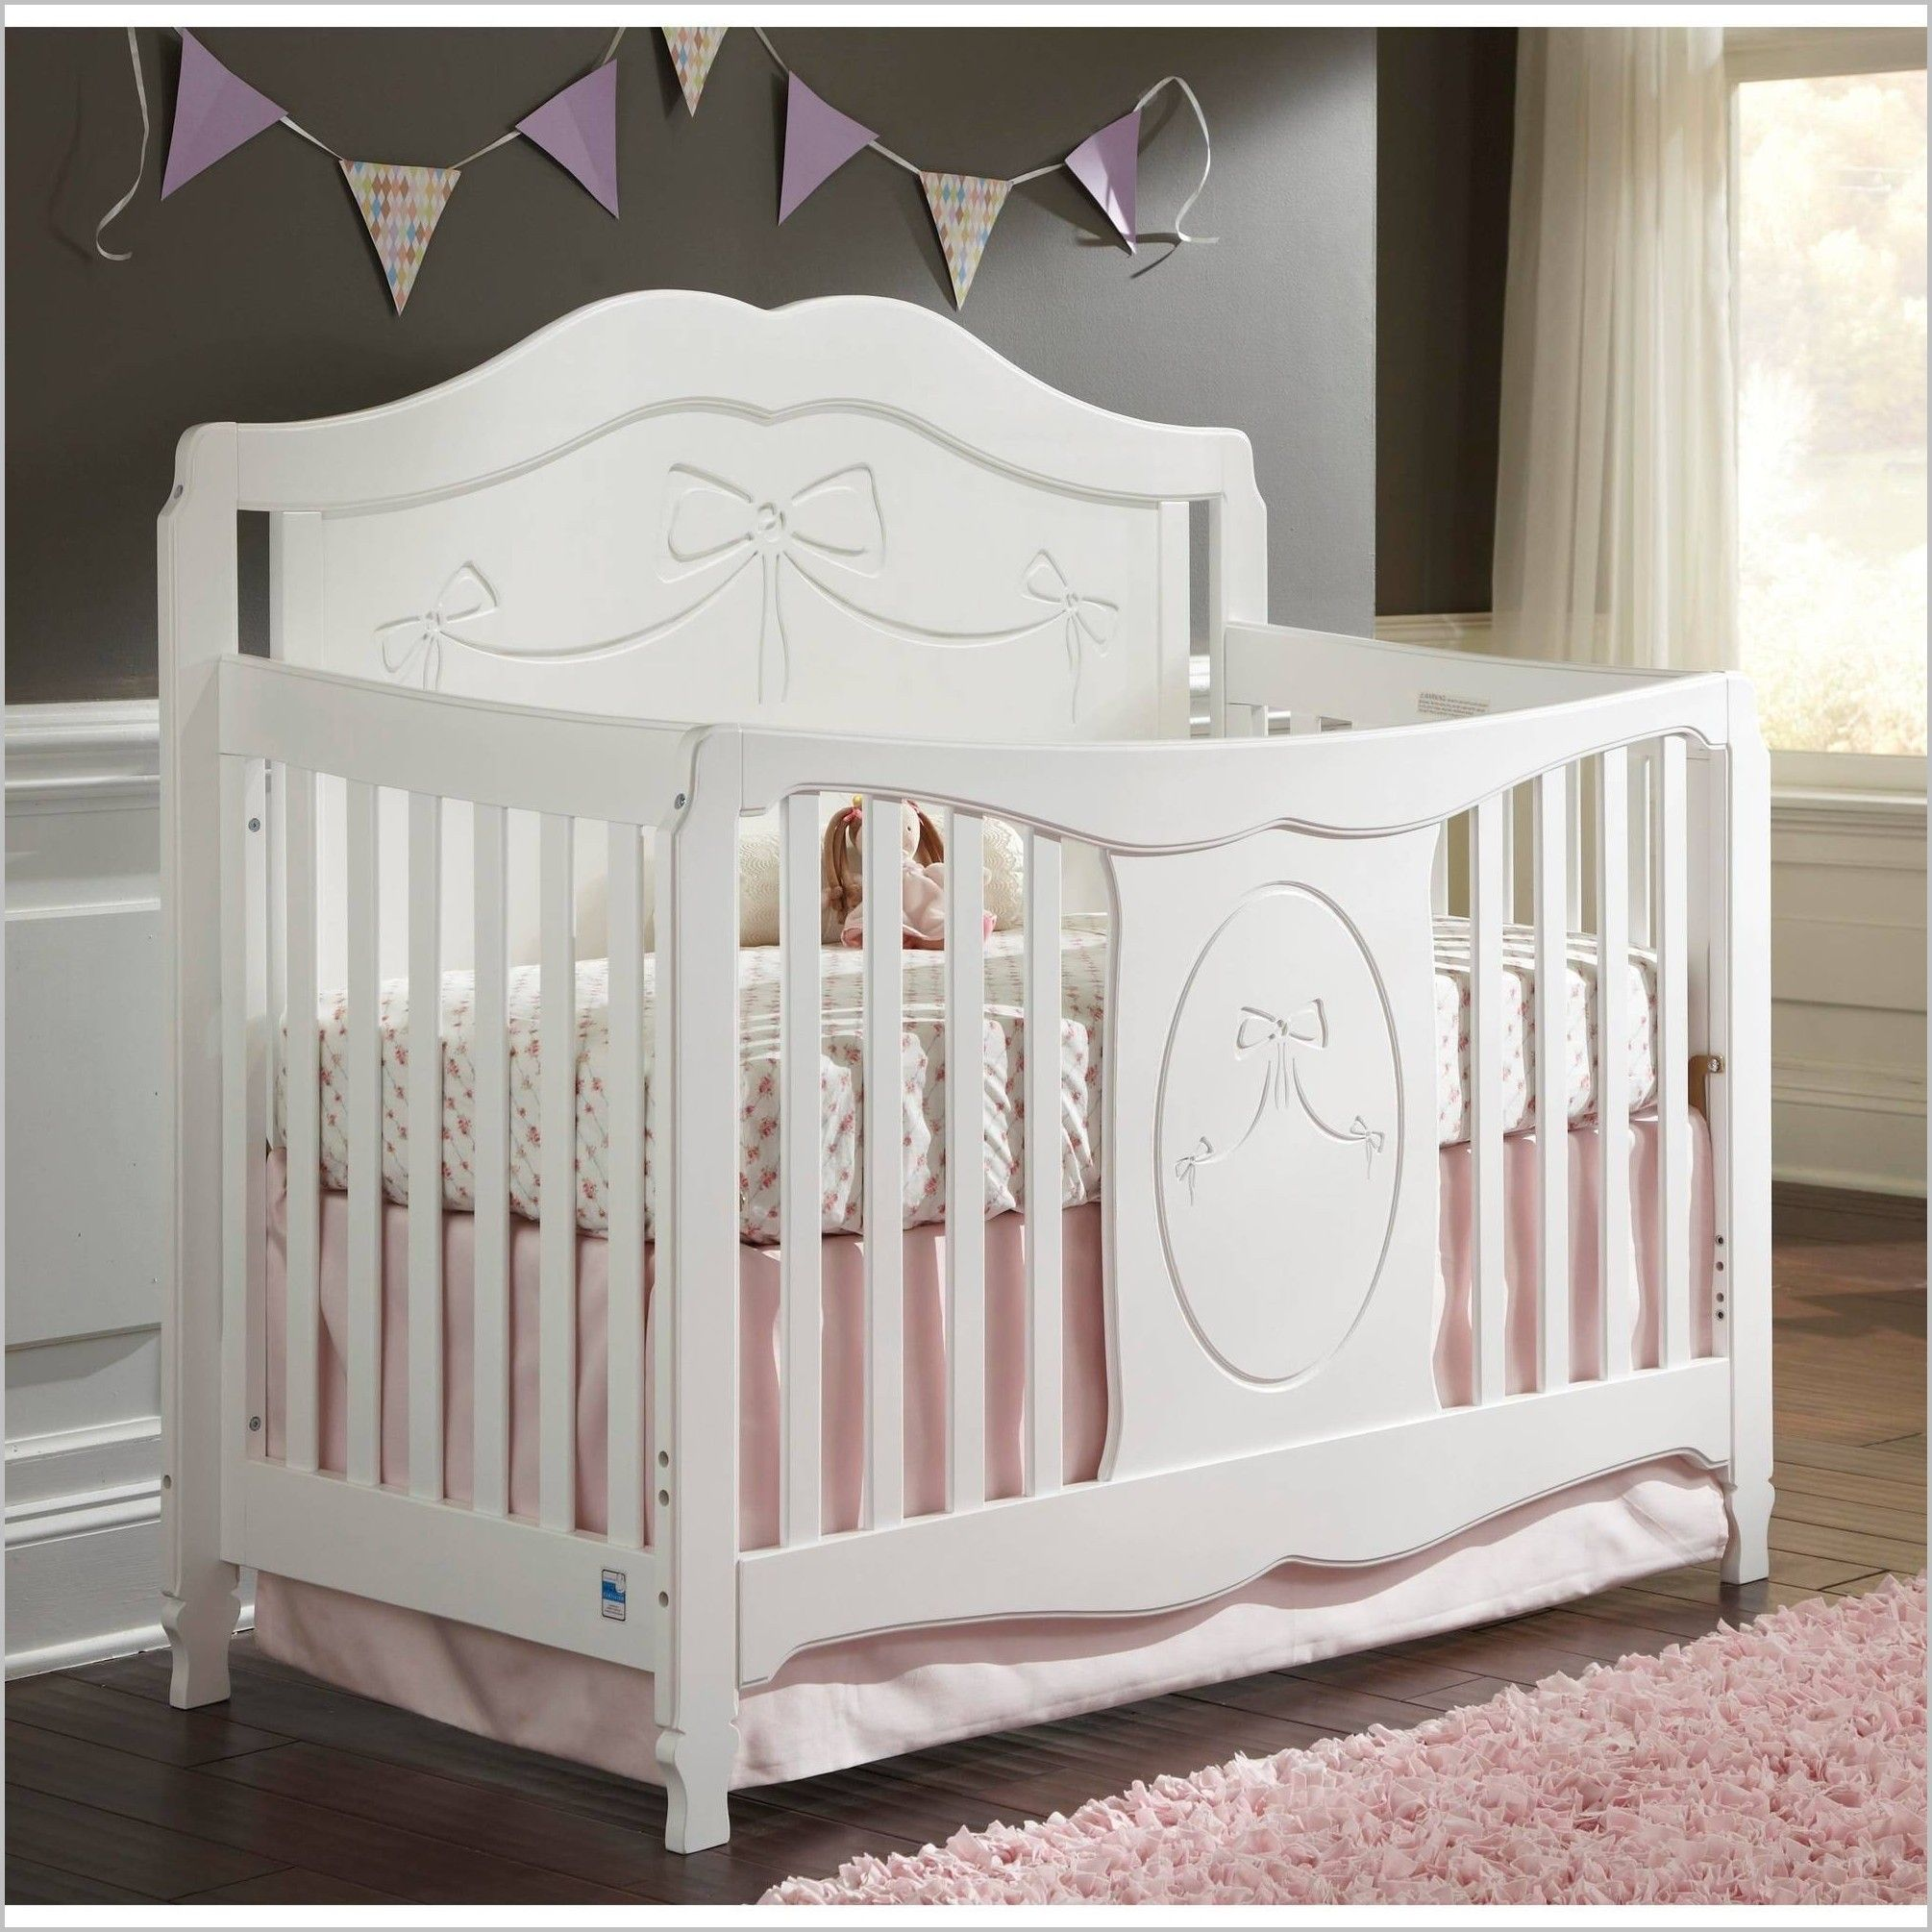 113 Reference Of Baby Crib Target Convertible In 2020 Convertible Crib White White Baby Cribs Target Nursery Furniture